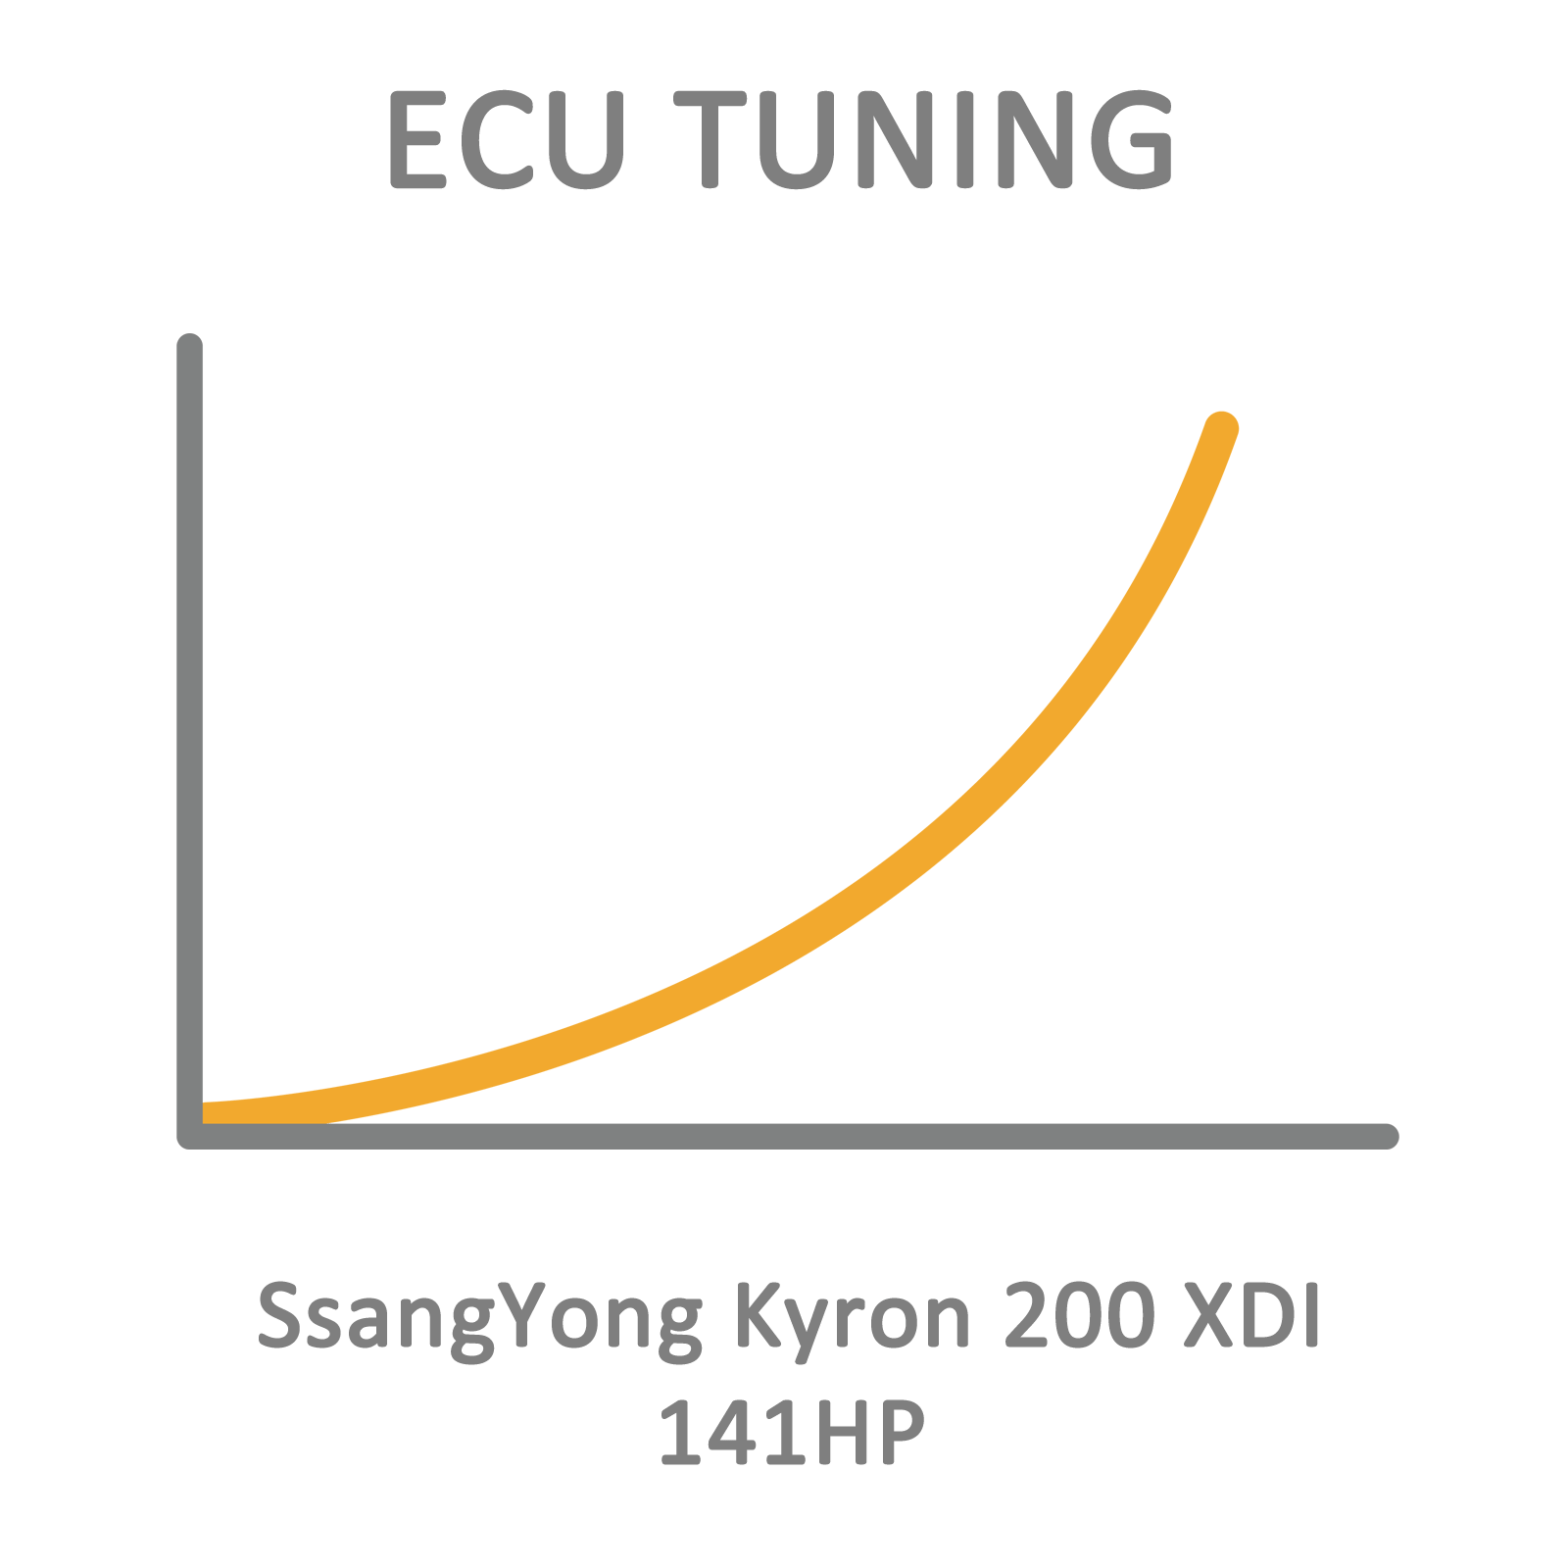 SsangYong Kyron 200 XDI 141HP ECU Tuning Remapping Programming